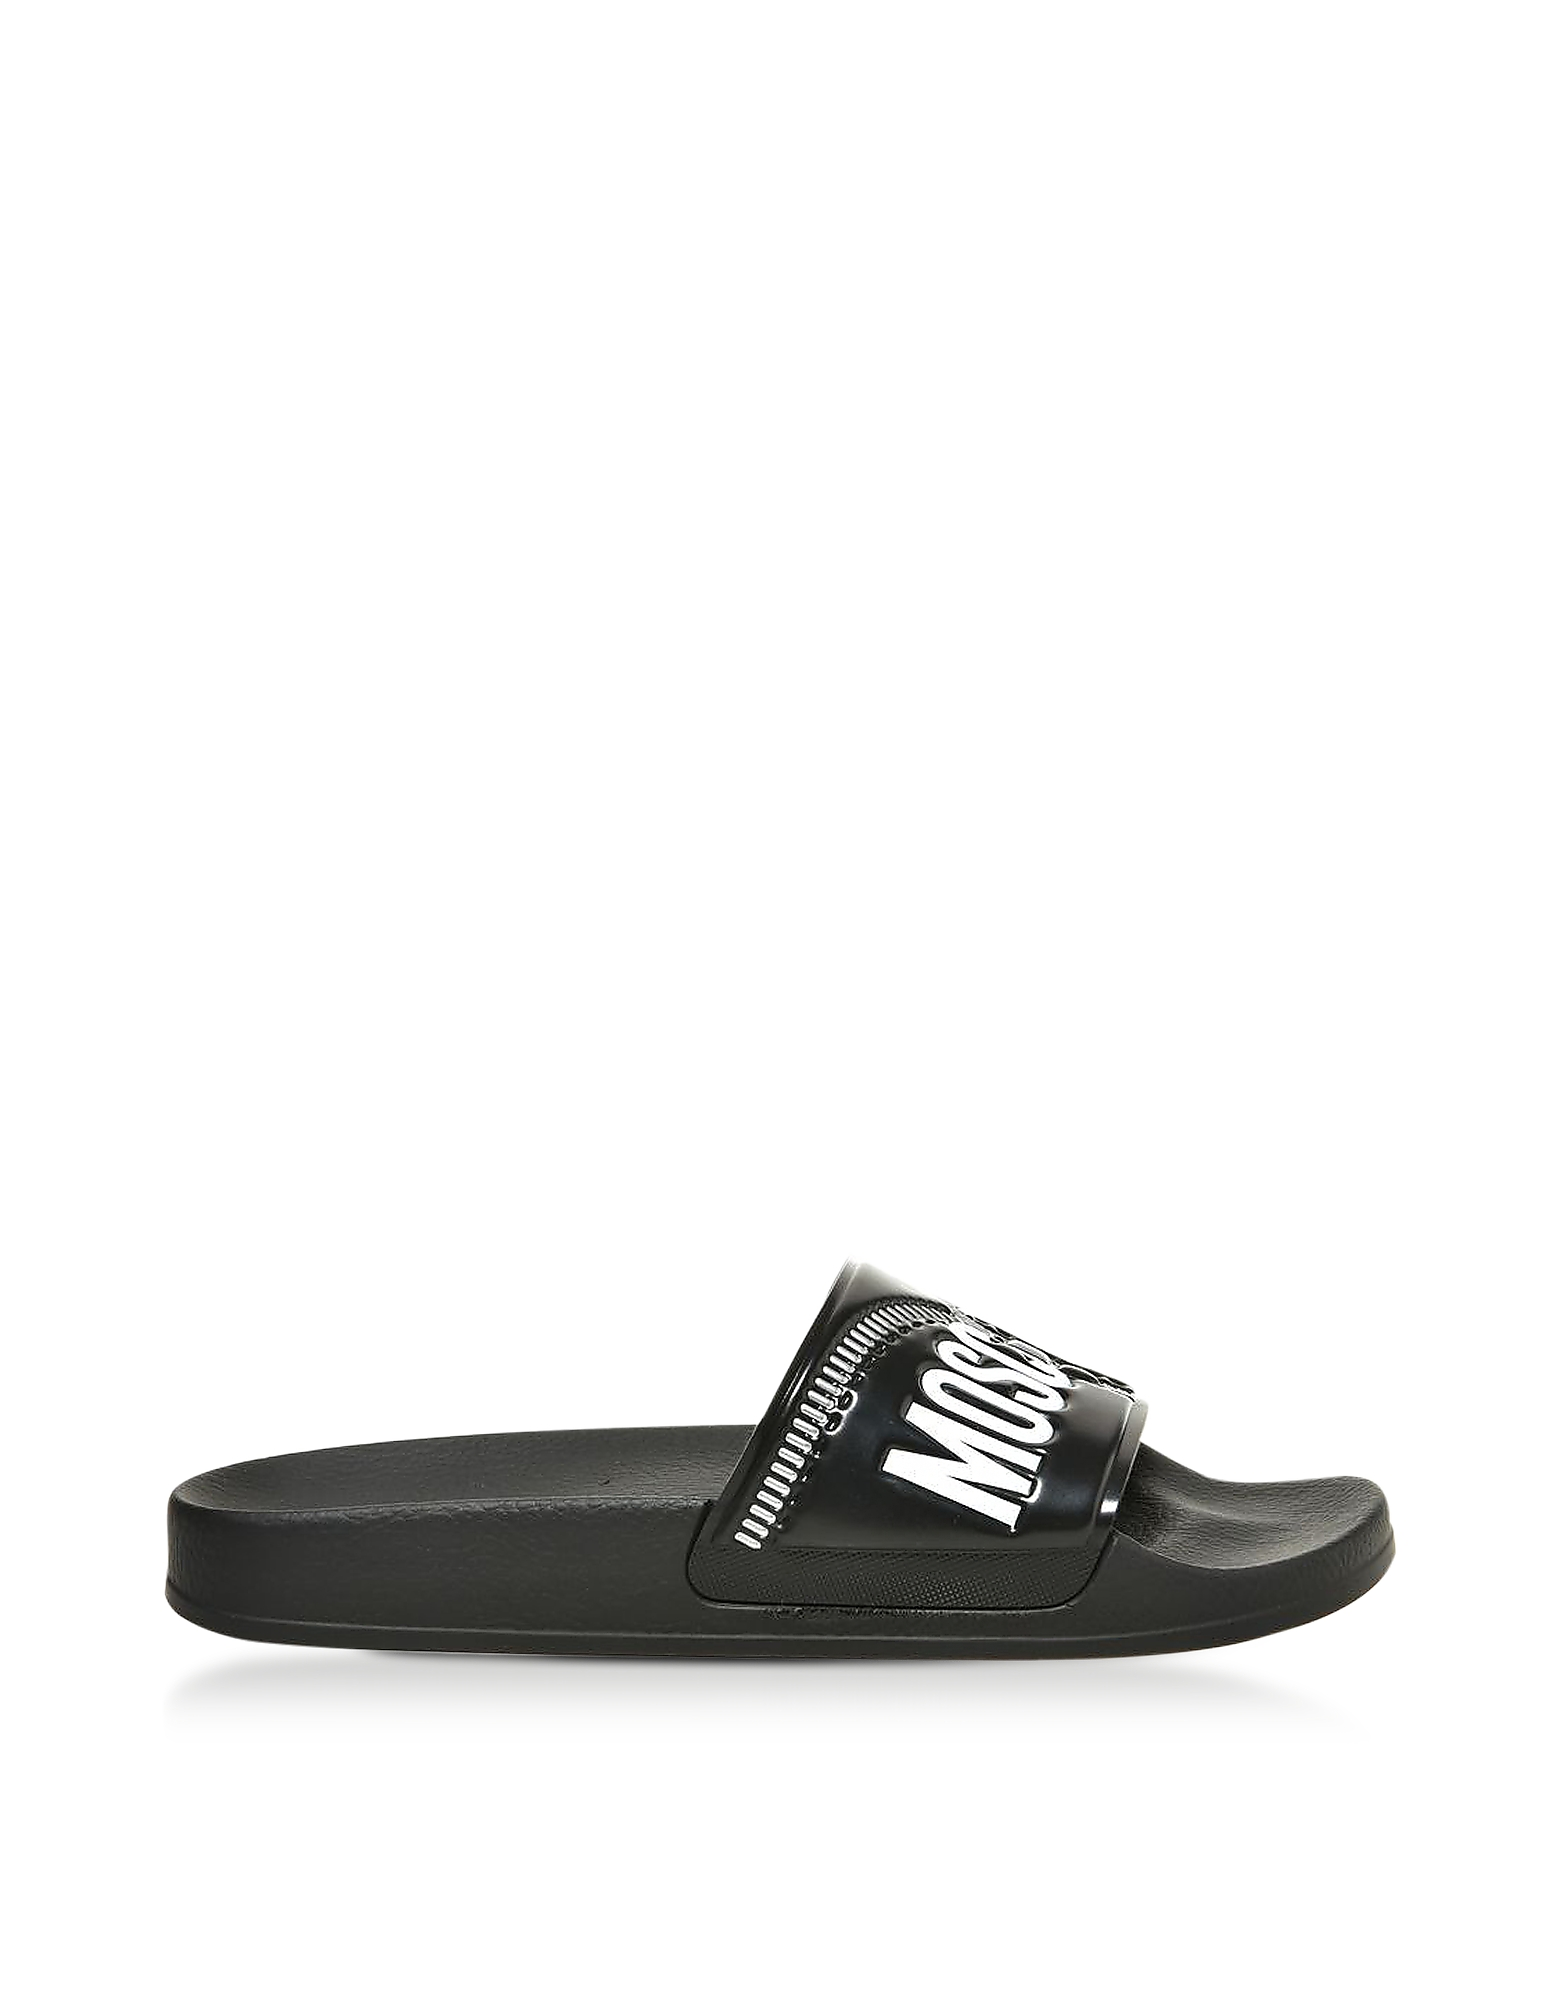 Moschino Shoes, Black Zip Printed Pvc Pool Sandals